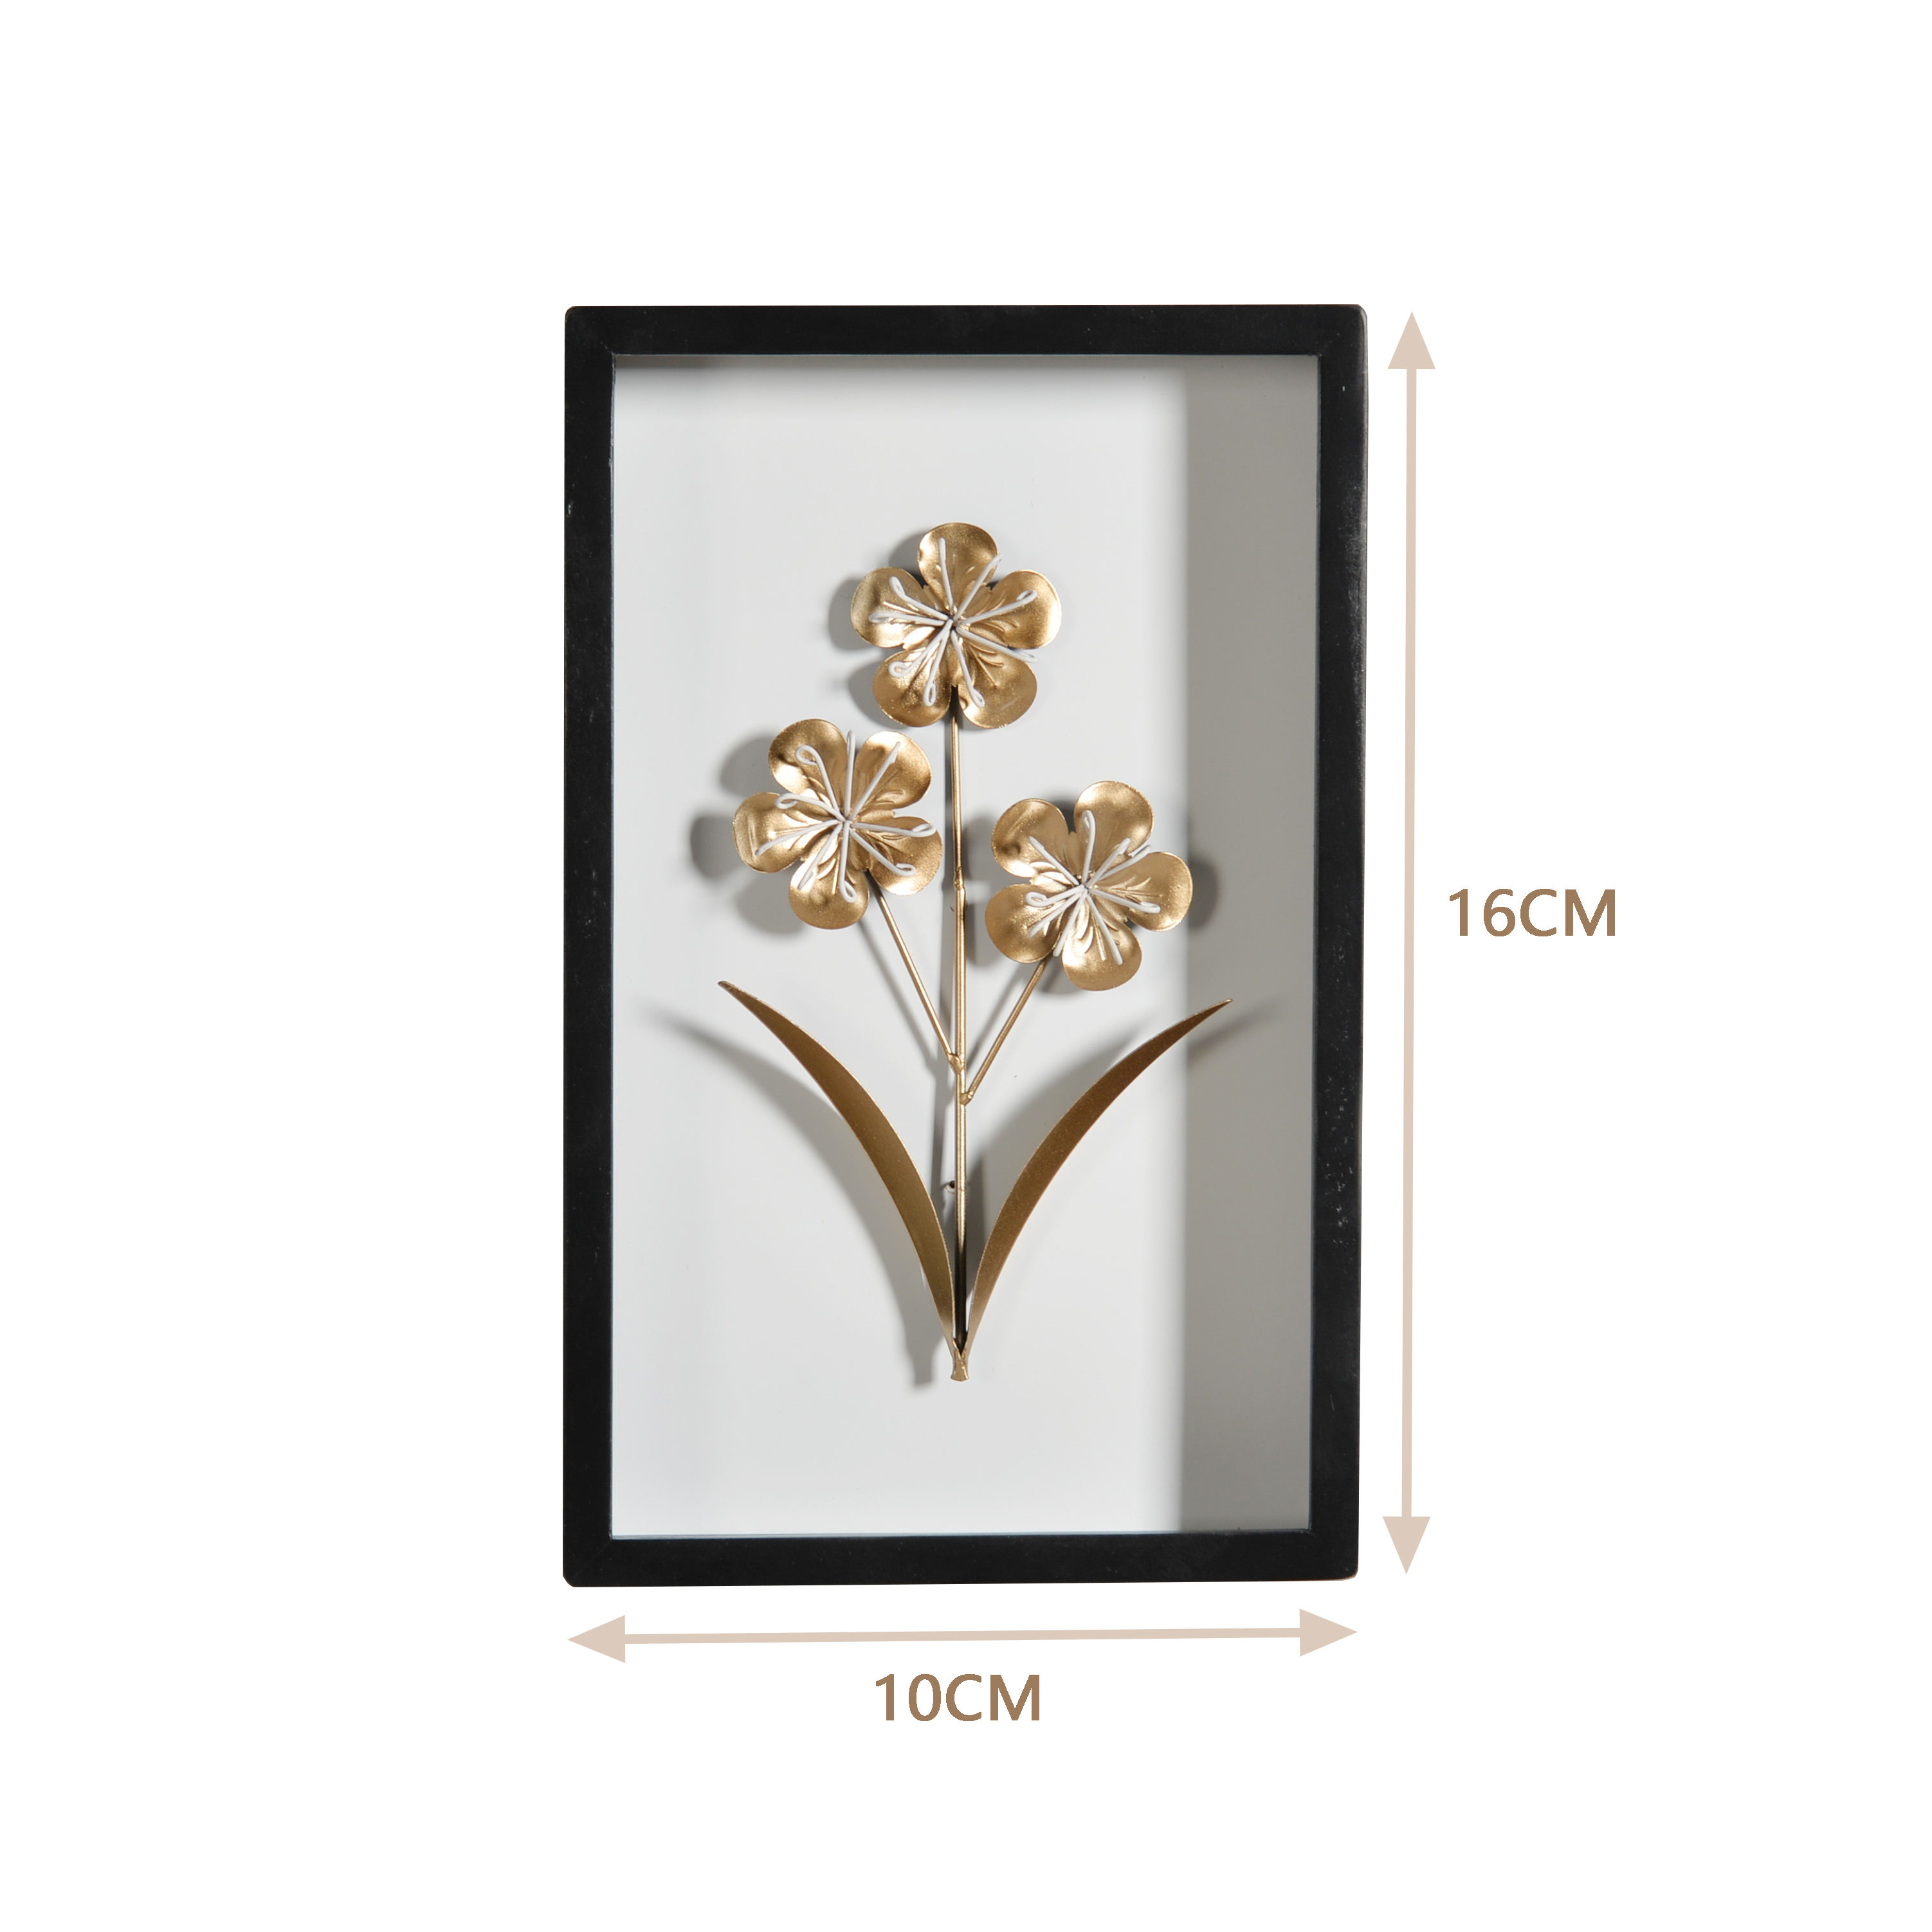 Mayco 3D Iron Plant Painting Metal Sculpture Wall Mounted Decorative Picture Frames for Home Decor